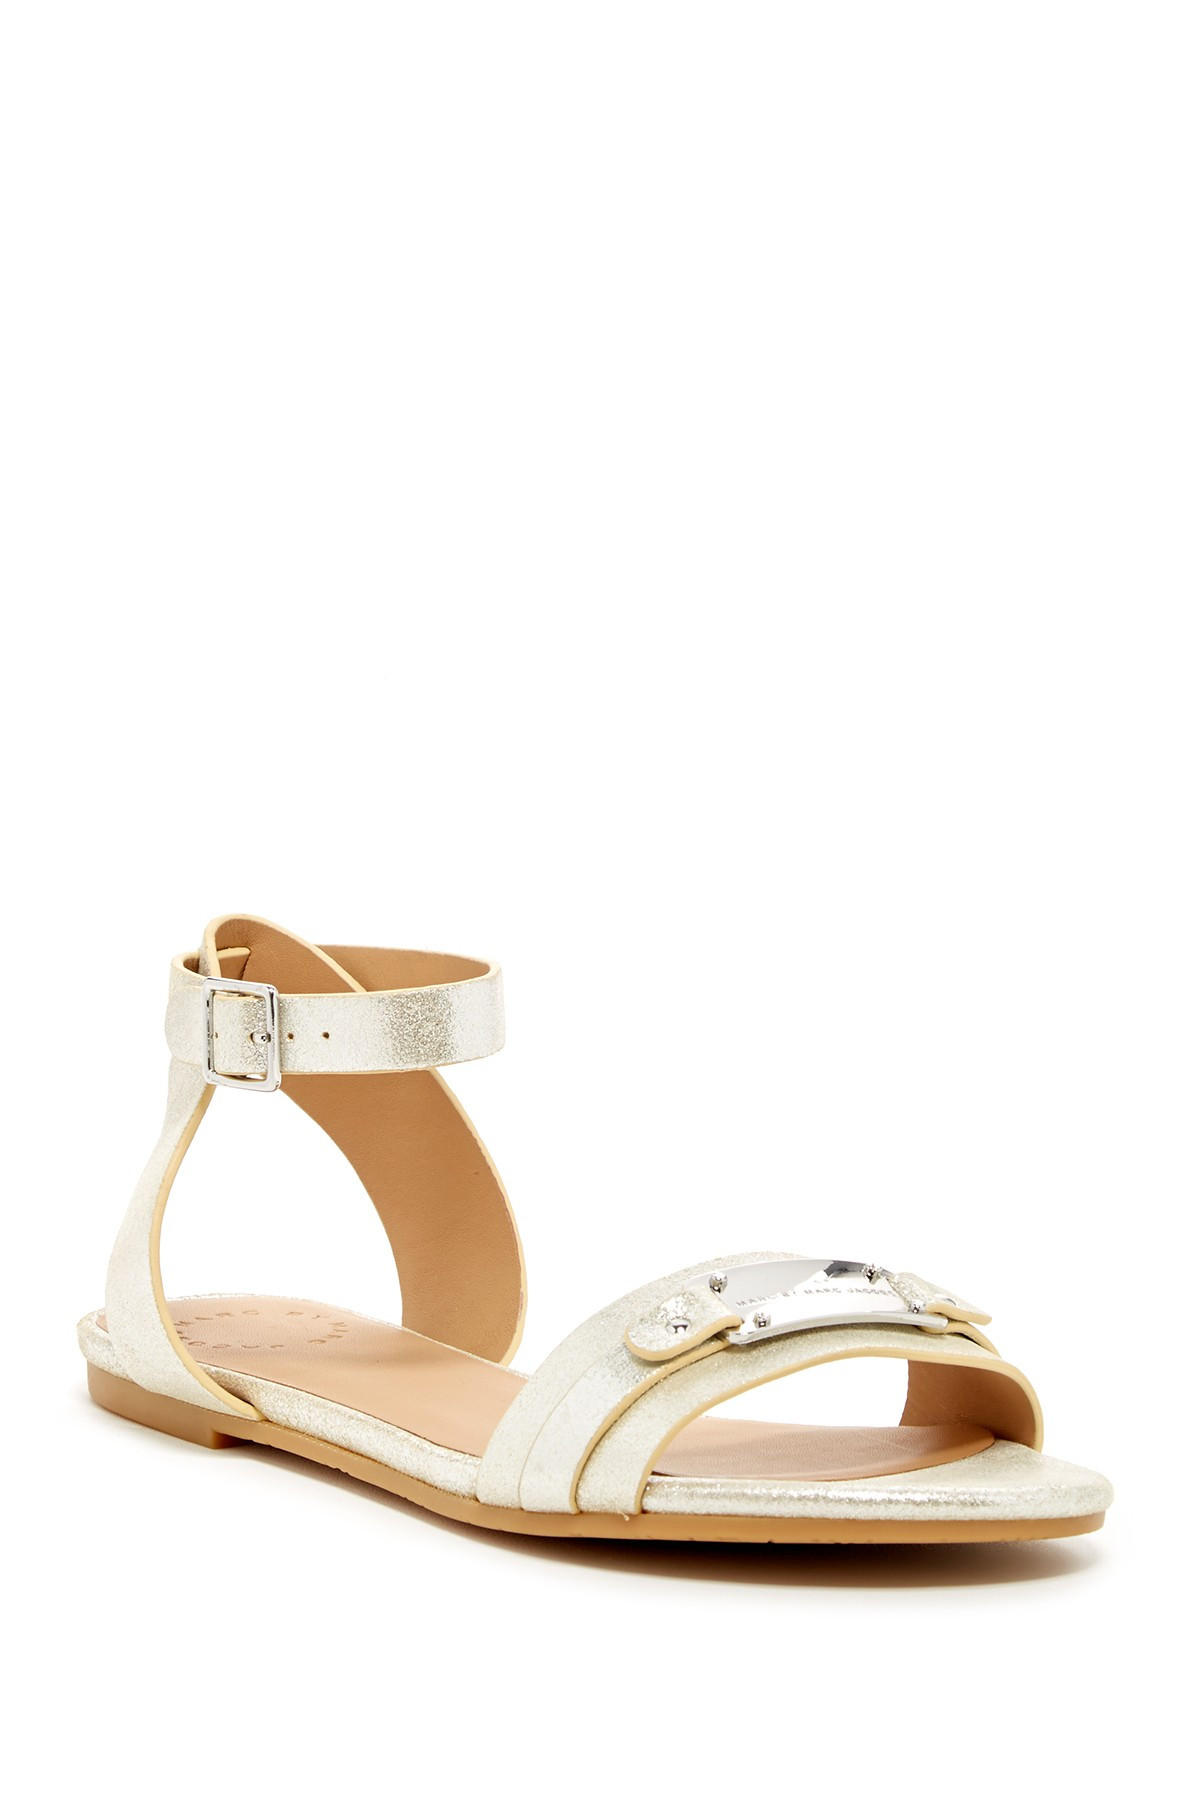 Yellow Marc By Sandal Jacobs Womens M9000202 y7bf6g